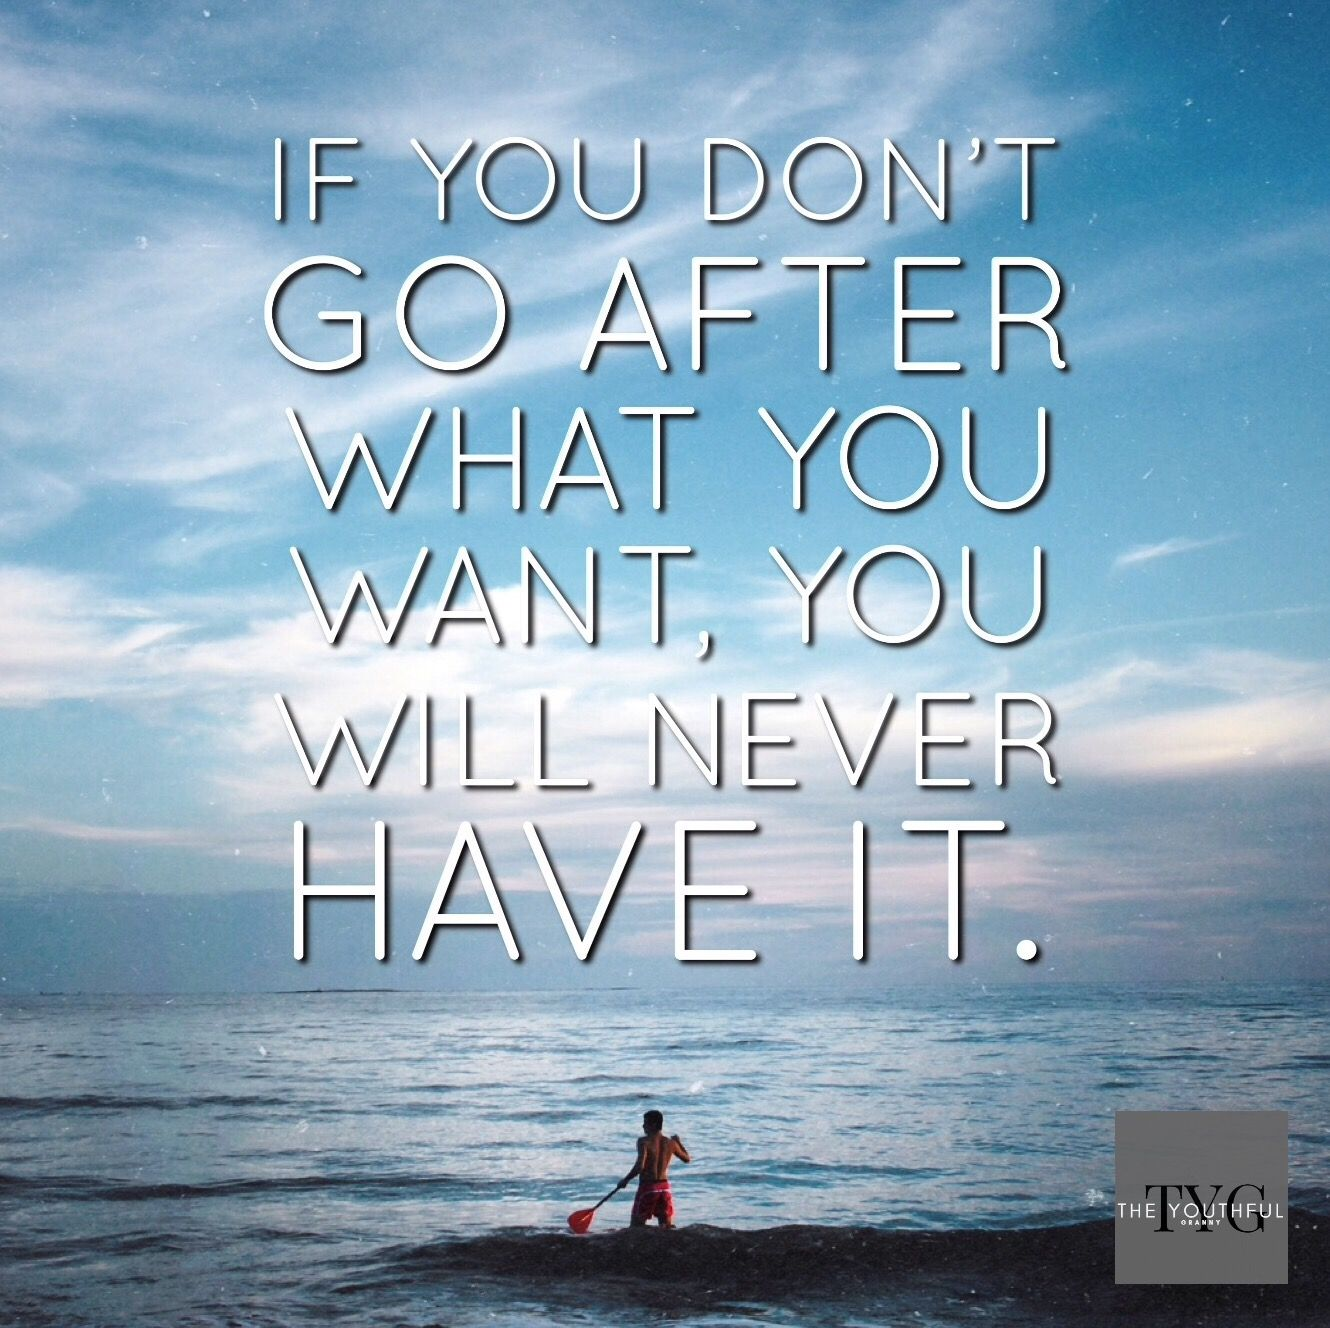 Motivational Thoughts Quotes Inspirational And Motivational Thoughts Quotes And Memes That